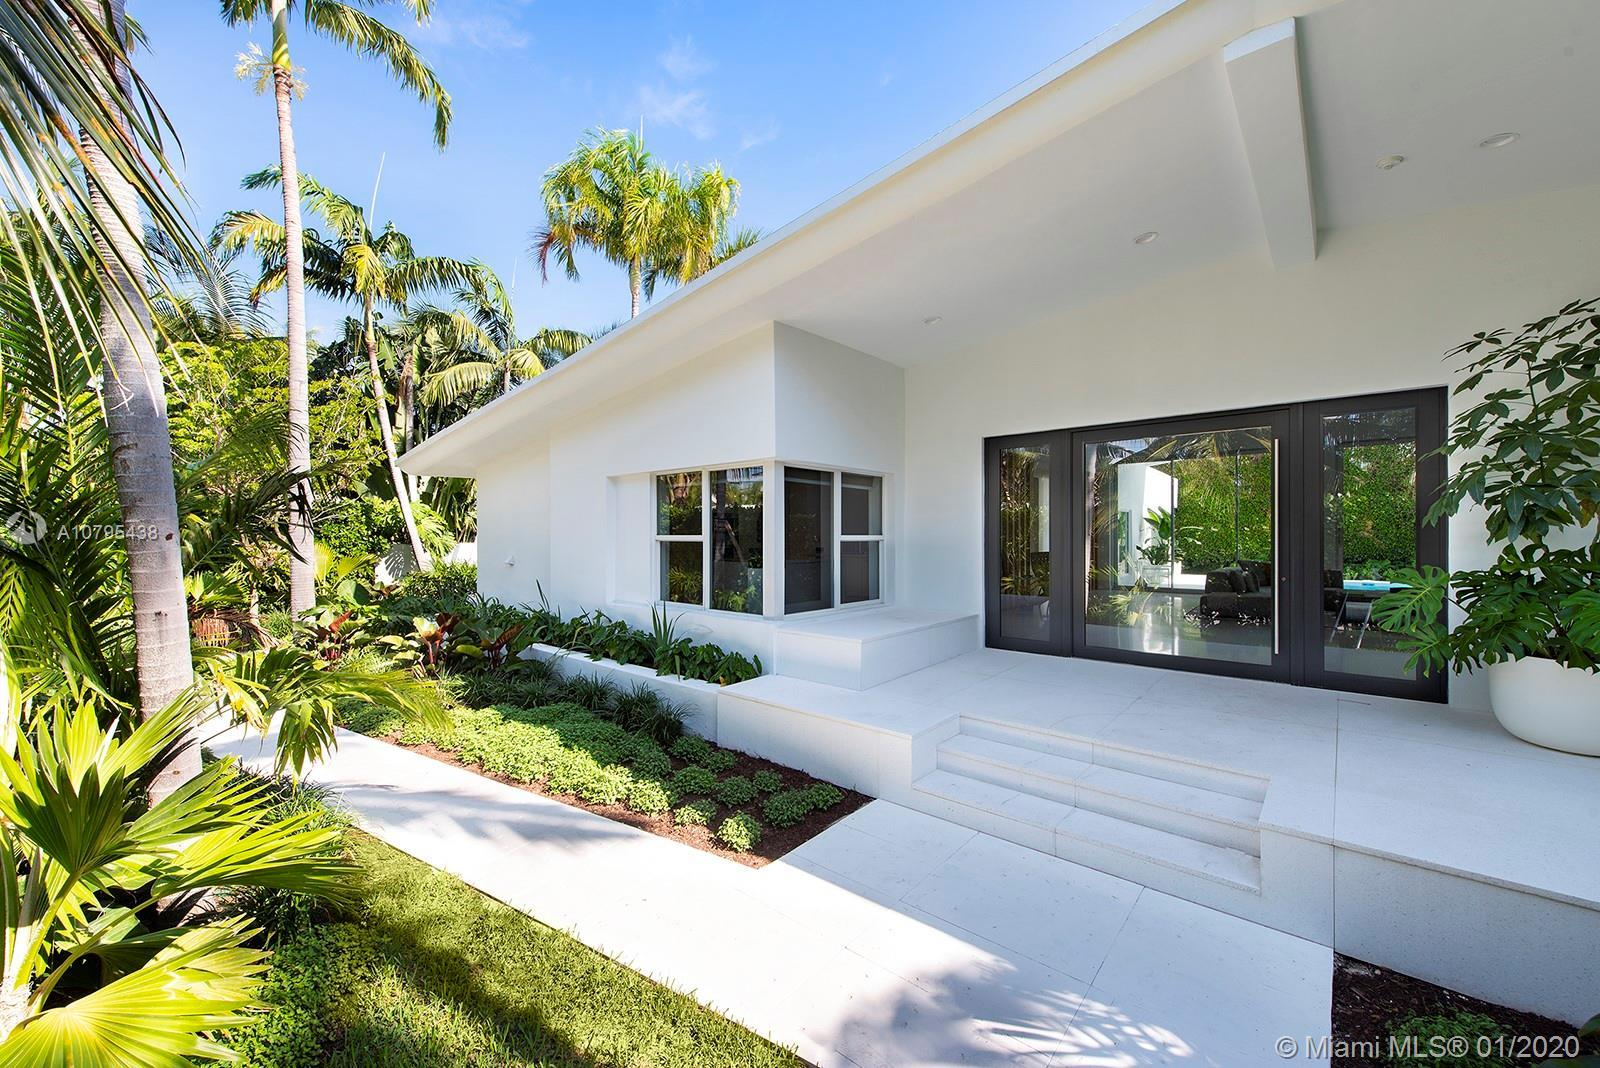 Located on the coveted Venetian Islands, this 5 bedroom 5.5 bath Mid-Century Modern home sits on an